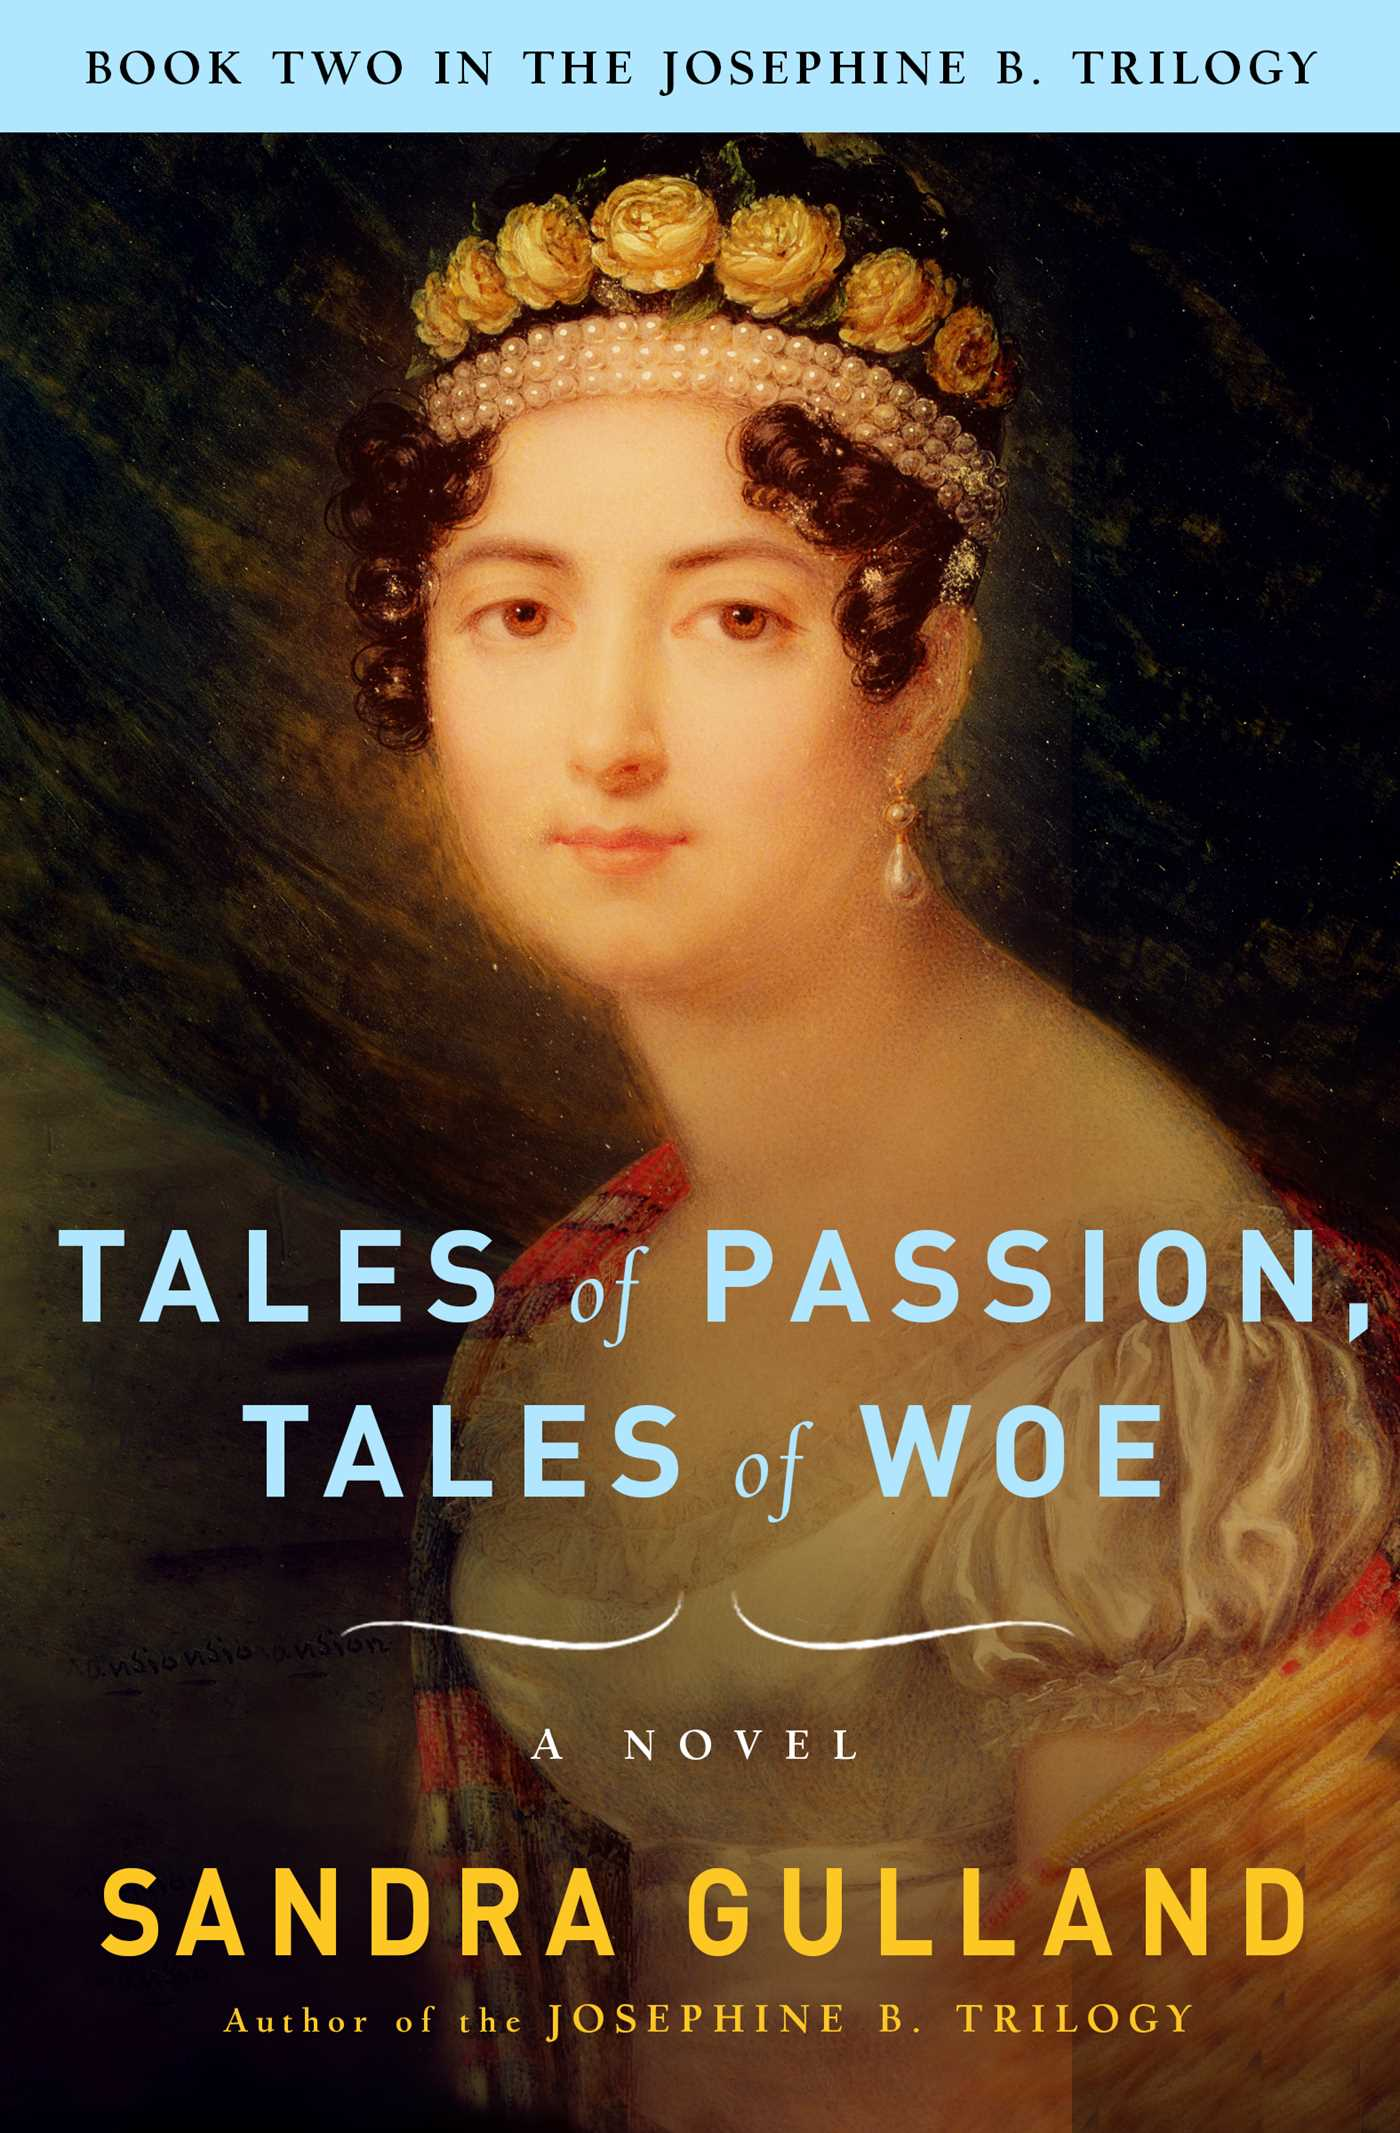 Tales-of-passion-tales-of-woe-9780743213585_hr